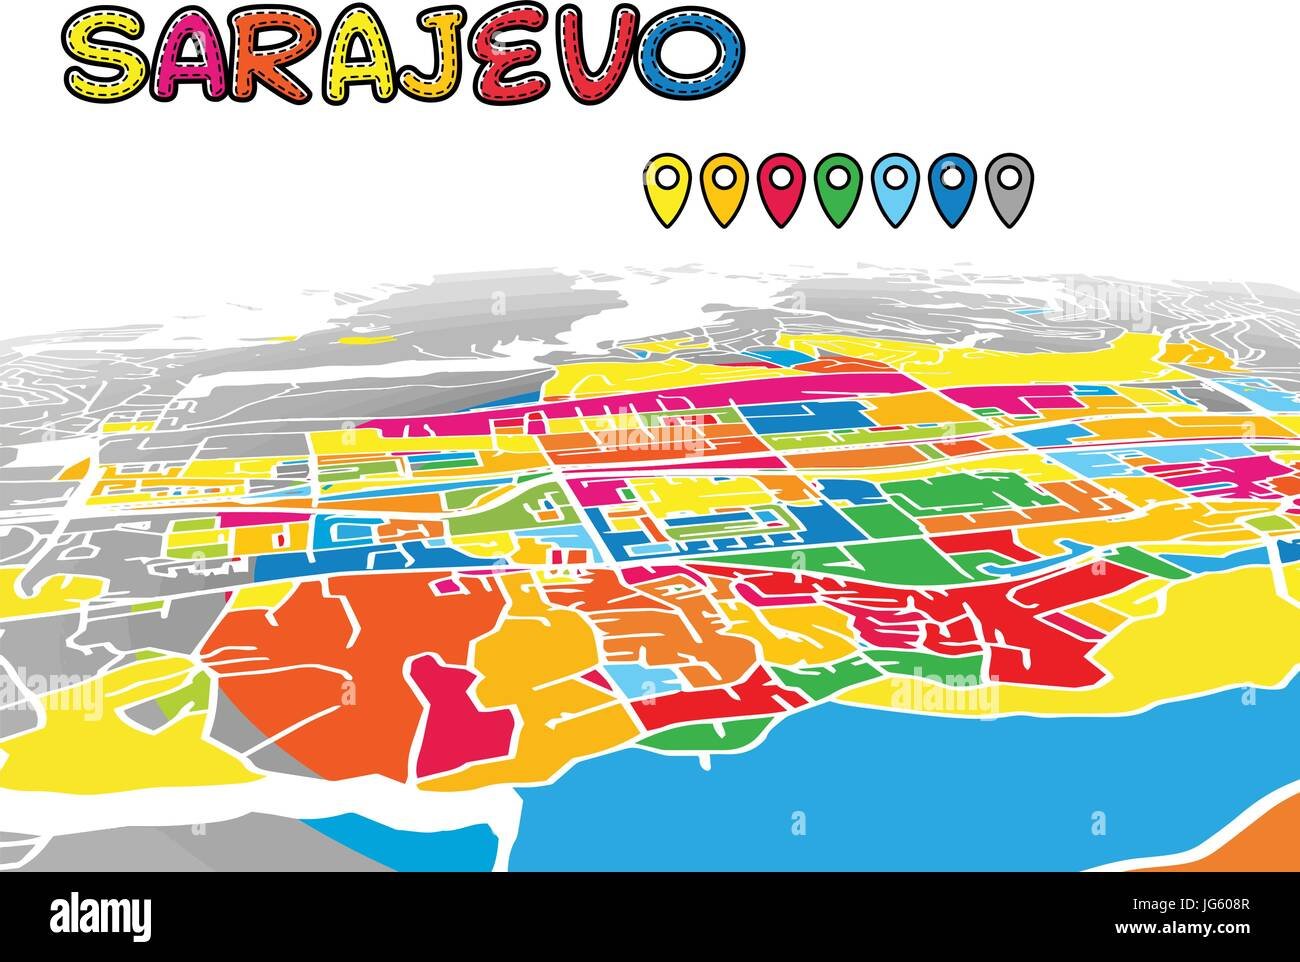 Sarajevo Downtown 3D Vector Map of Famous Streets. Bright foreground full of colors. White Streets, Waterways and - Stock Vector